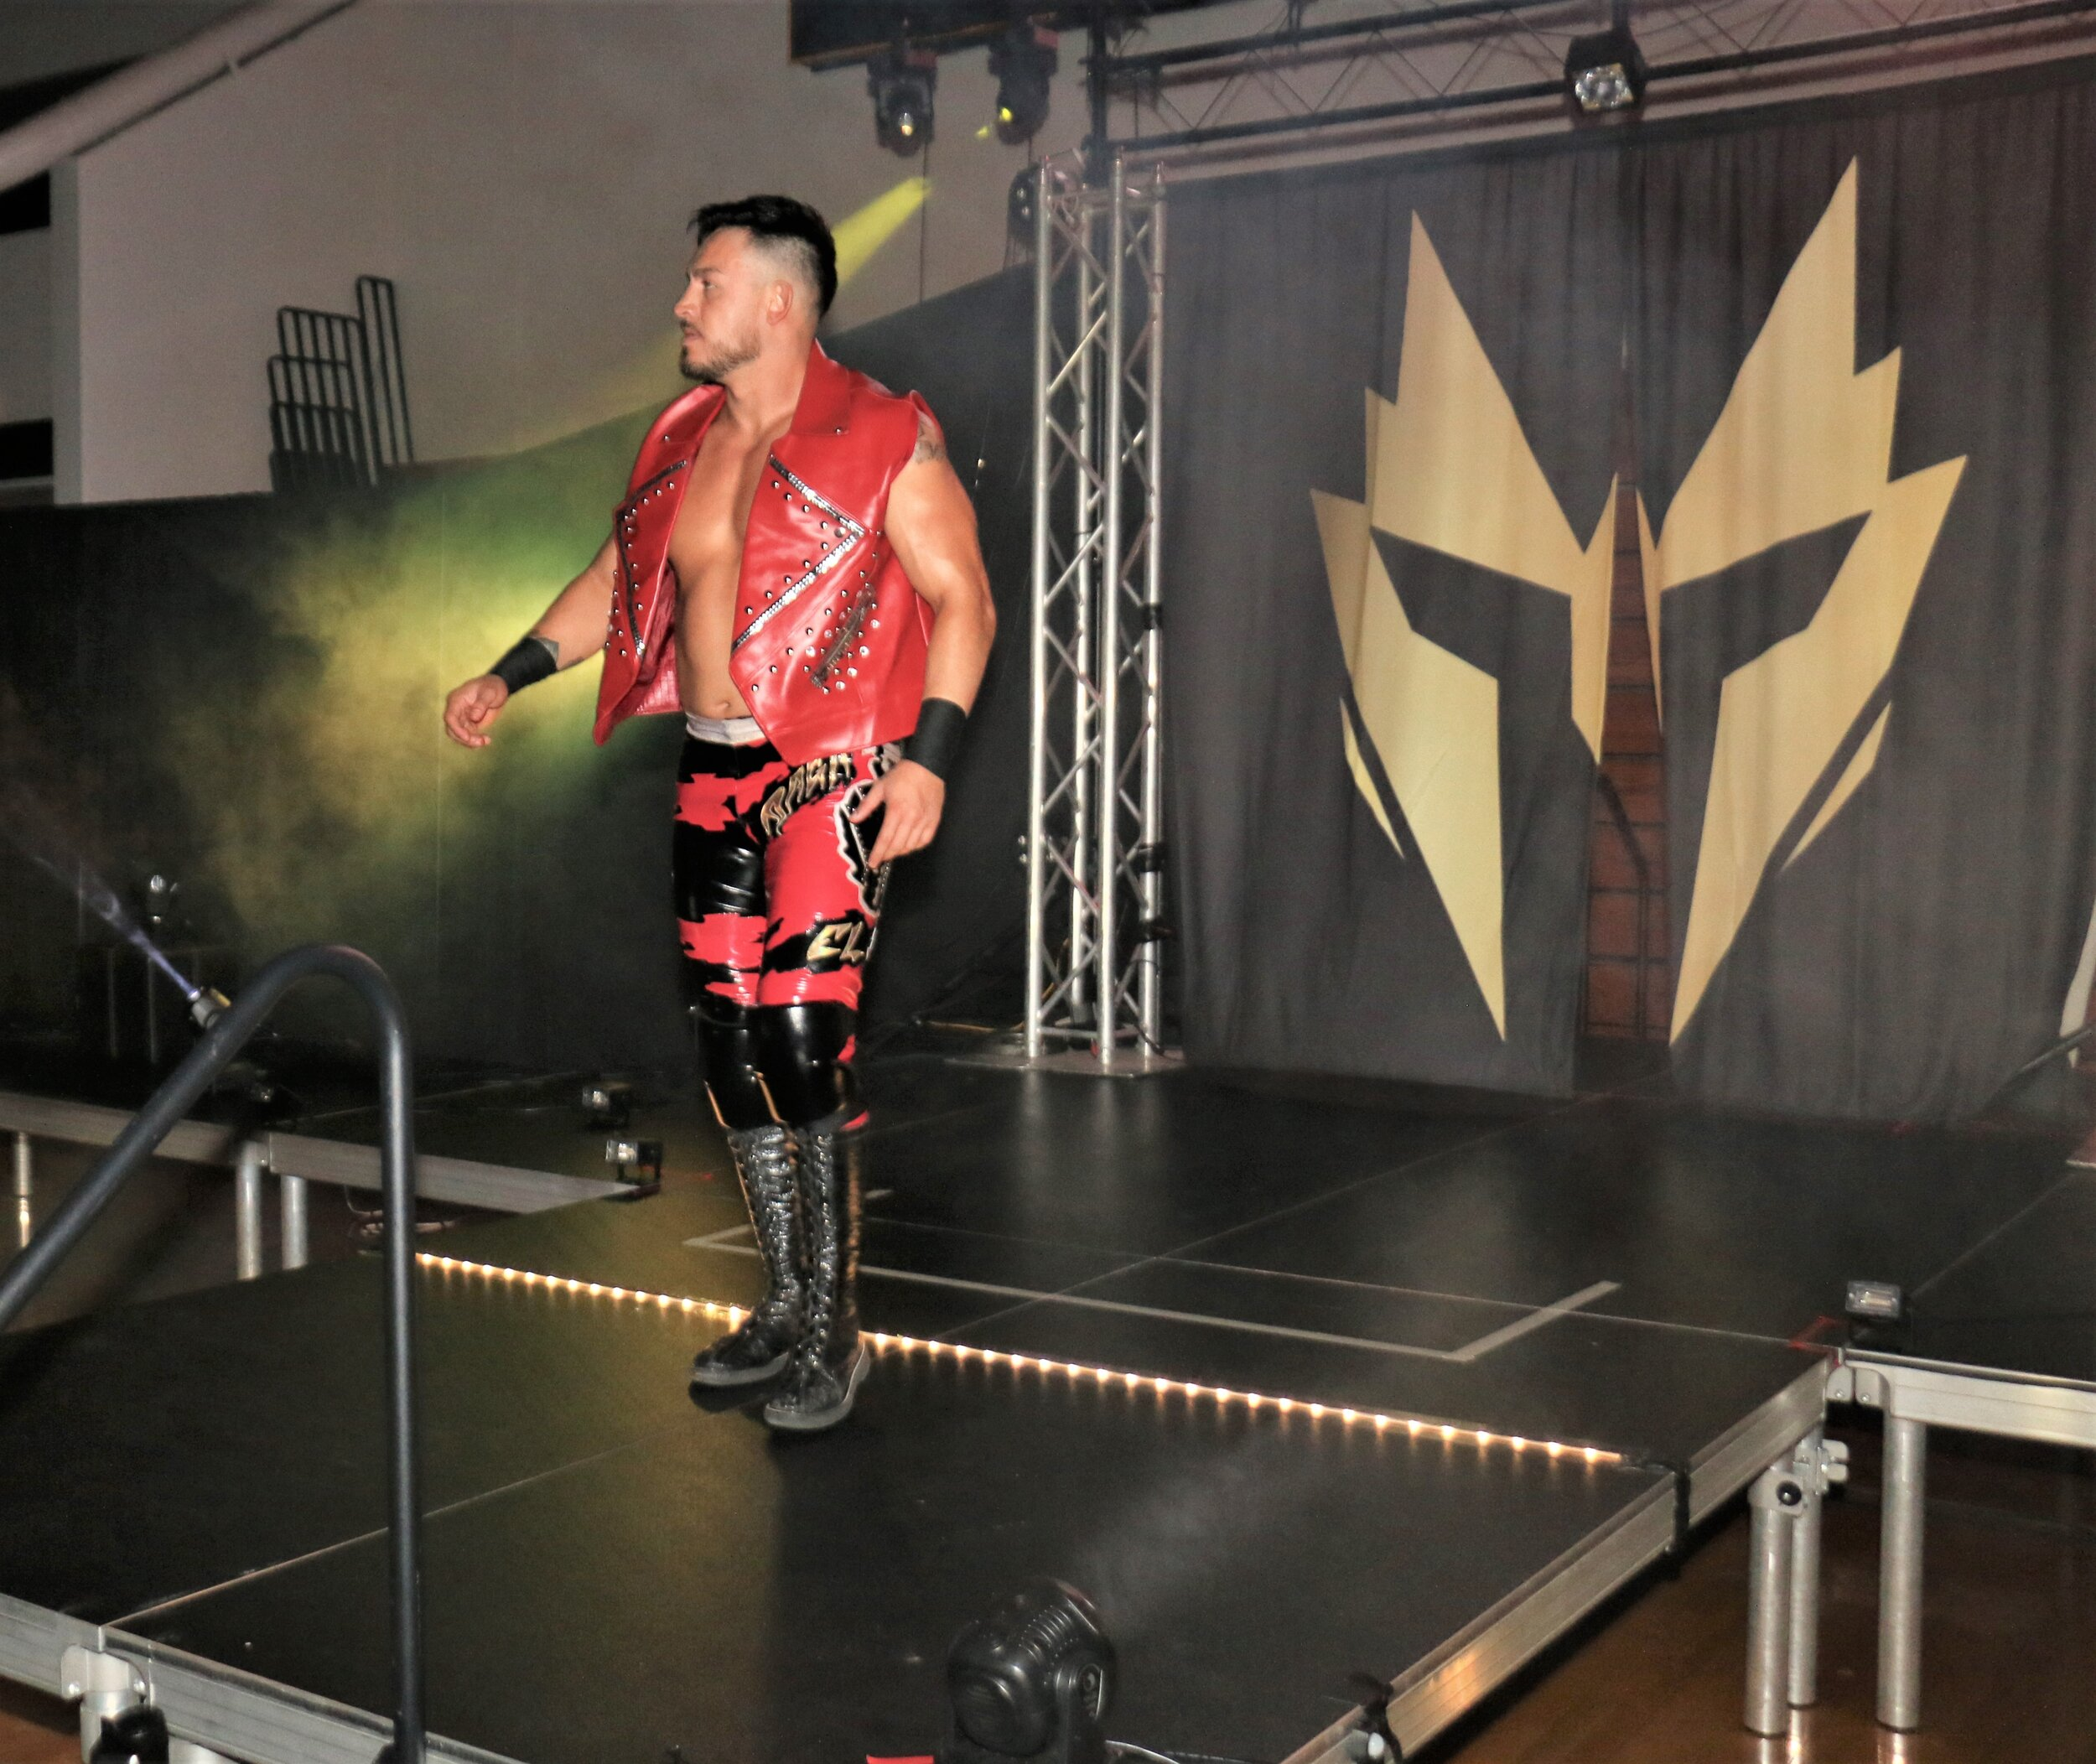 Daga enters the arena for the tag team match.